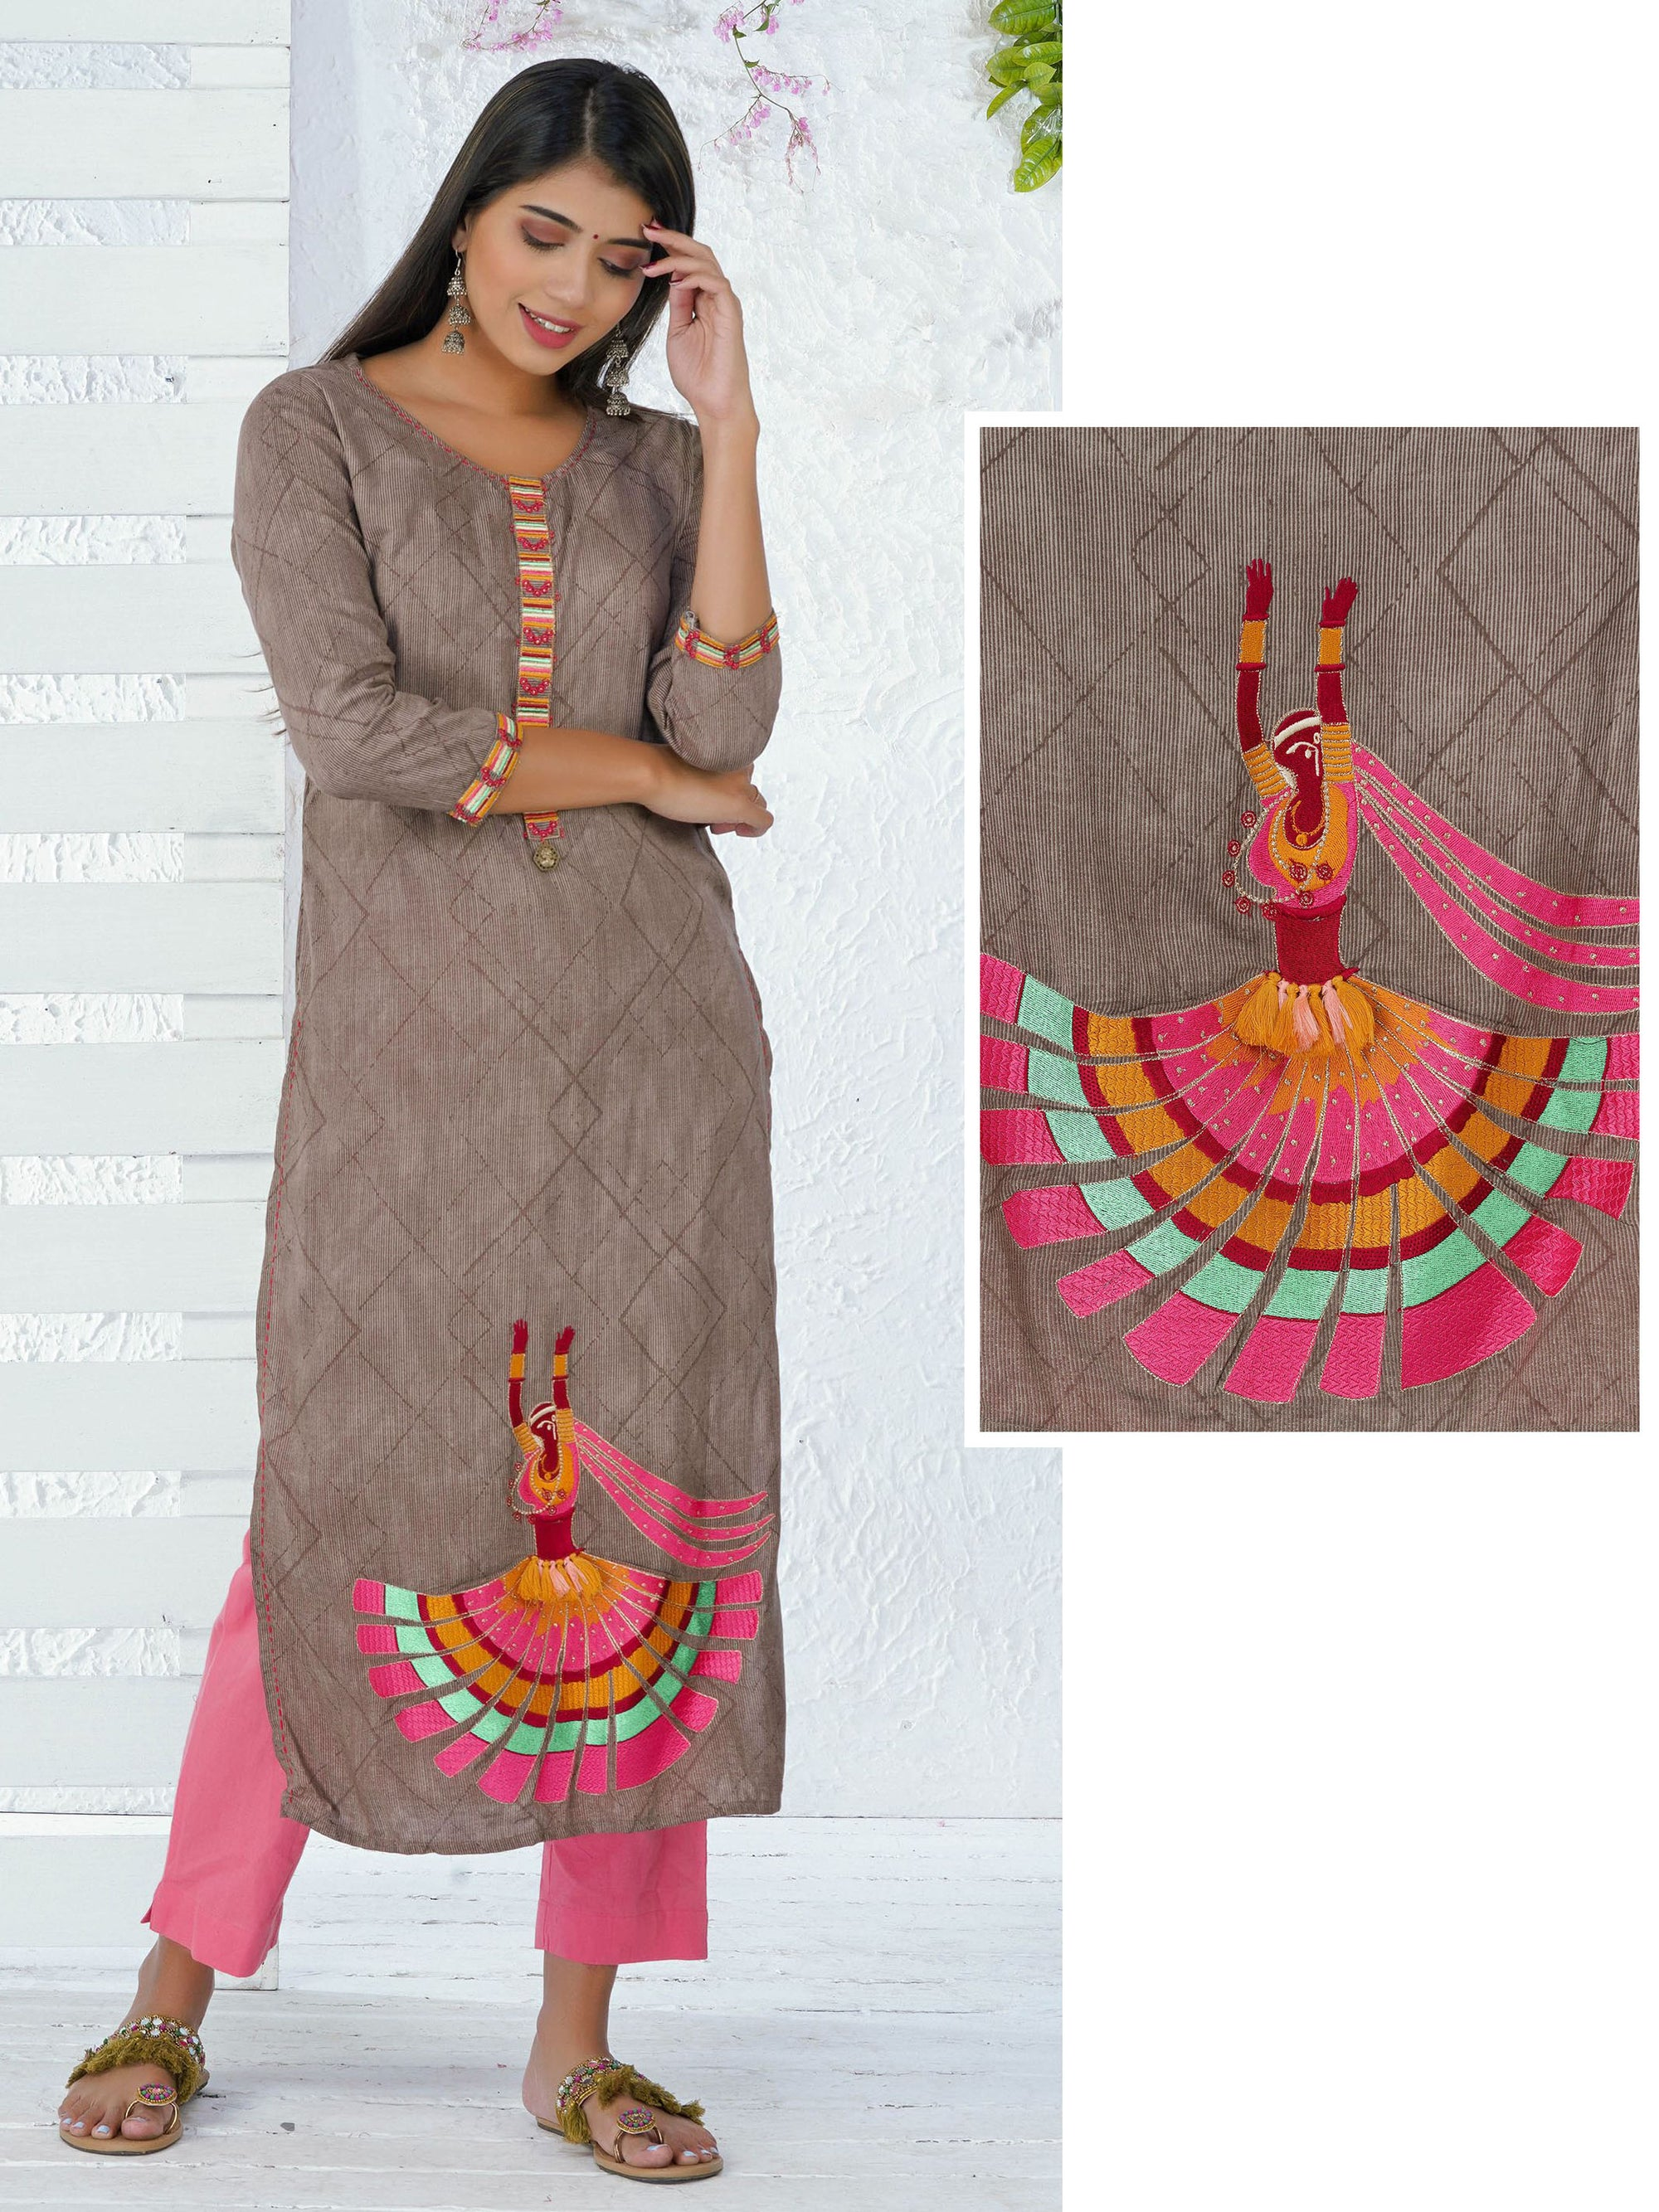 Abstract Printed & Embroidered Dancing Girl Kurta - Light Cocoa Brown